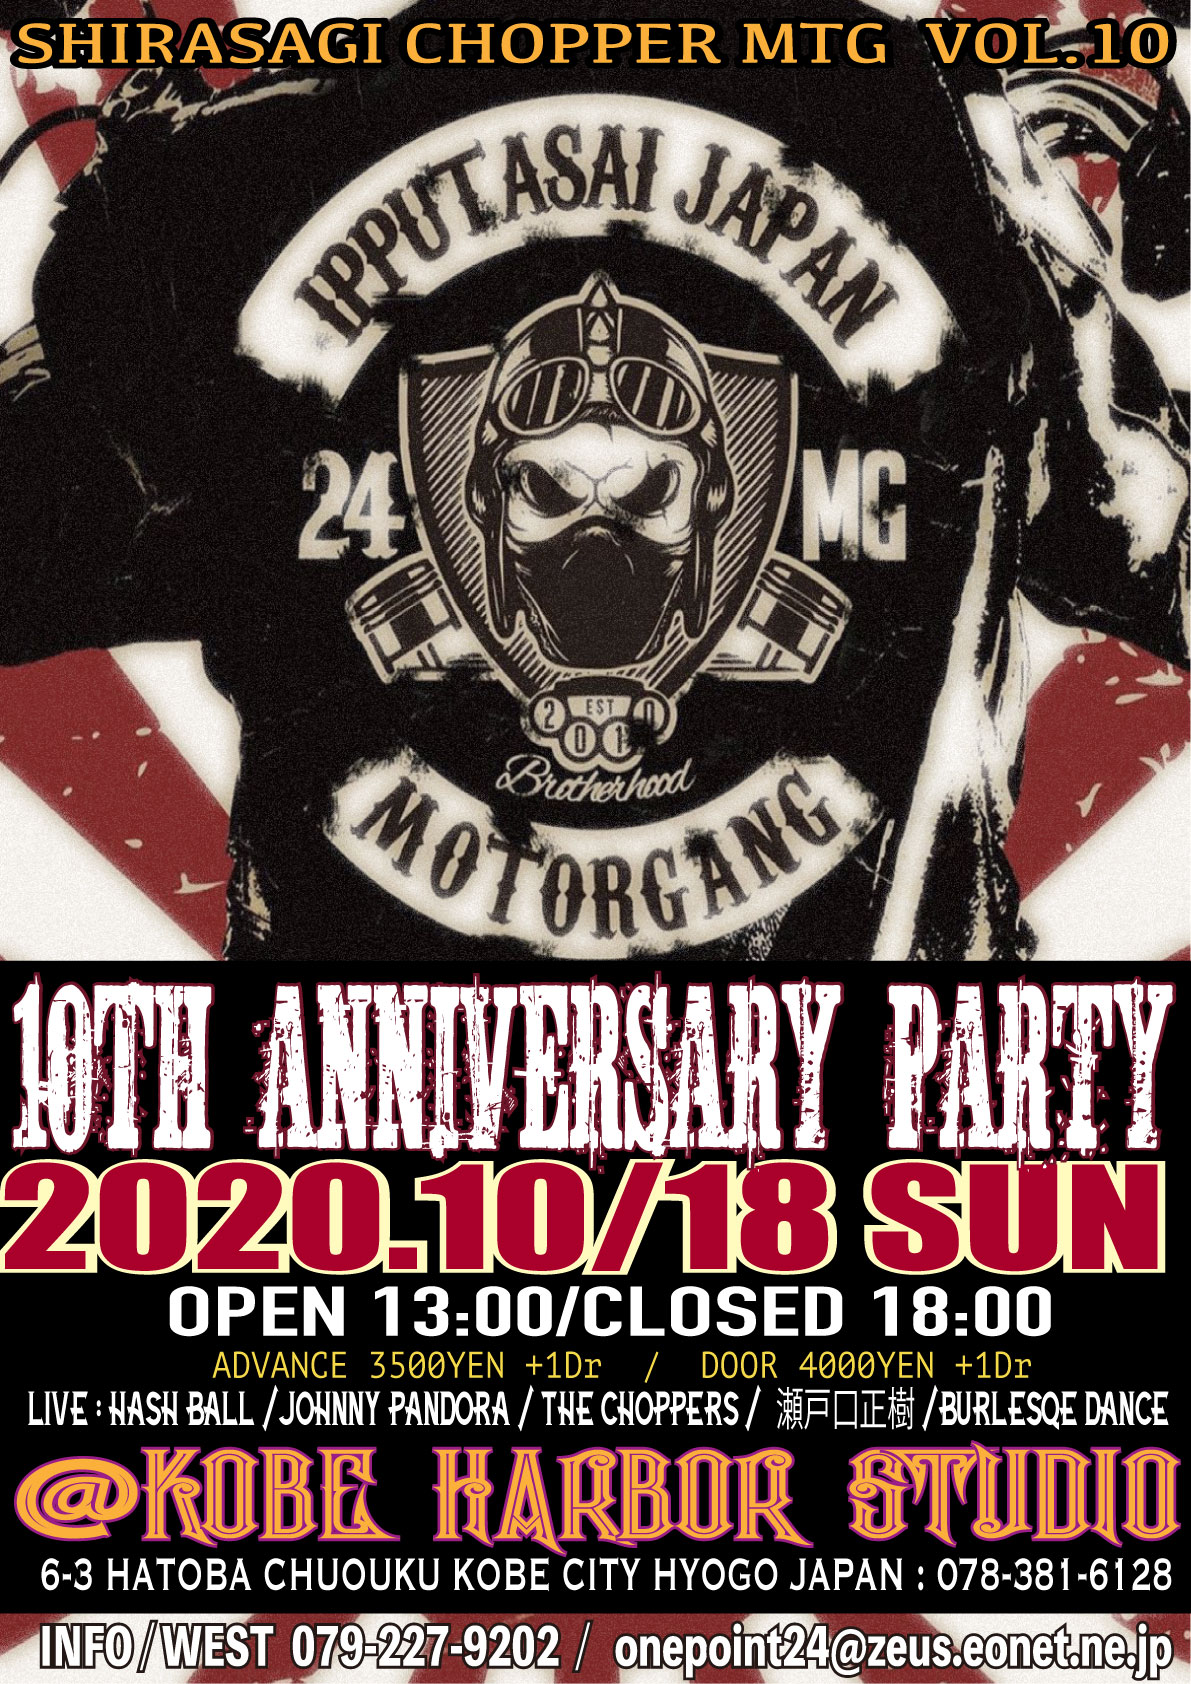 SHIRASAGI CHOPPER MTG Vol.10 〜壱風多彩MOTOR GANG 10周年記念PARTY〜